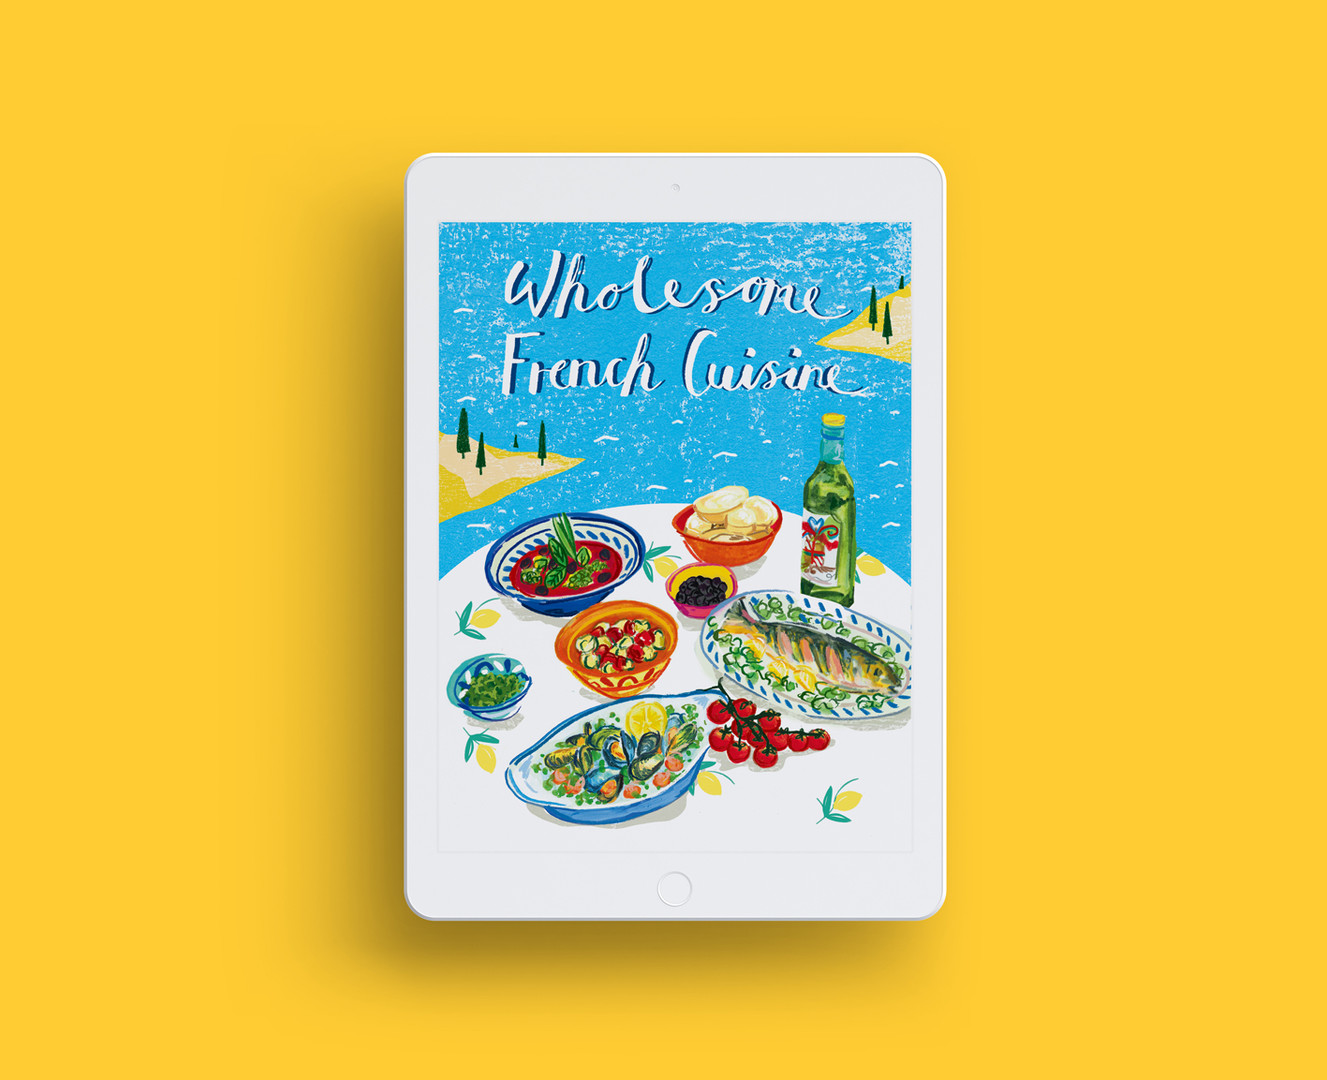 cook book cover design and illustration, hand typography, print making, textures, painterly, watercolour illustration, food illustration, food editorial, Jenny Daymond Design and Illustration